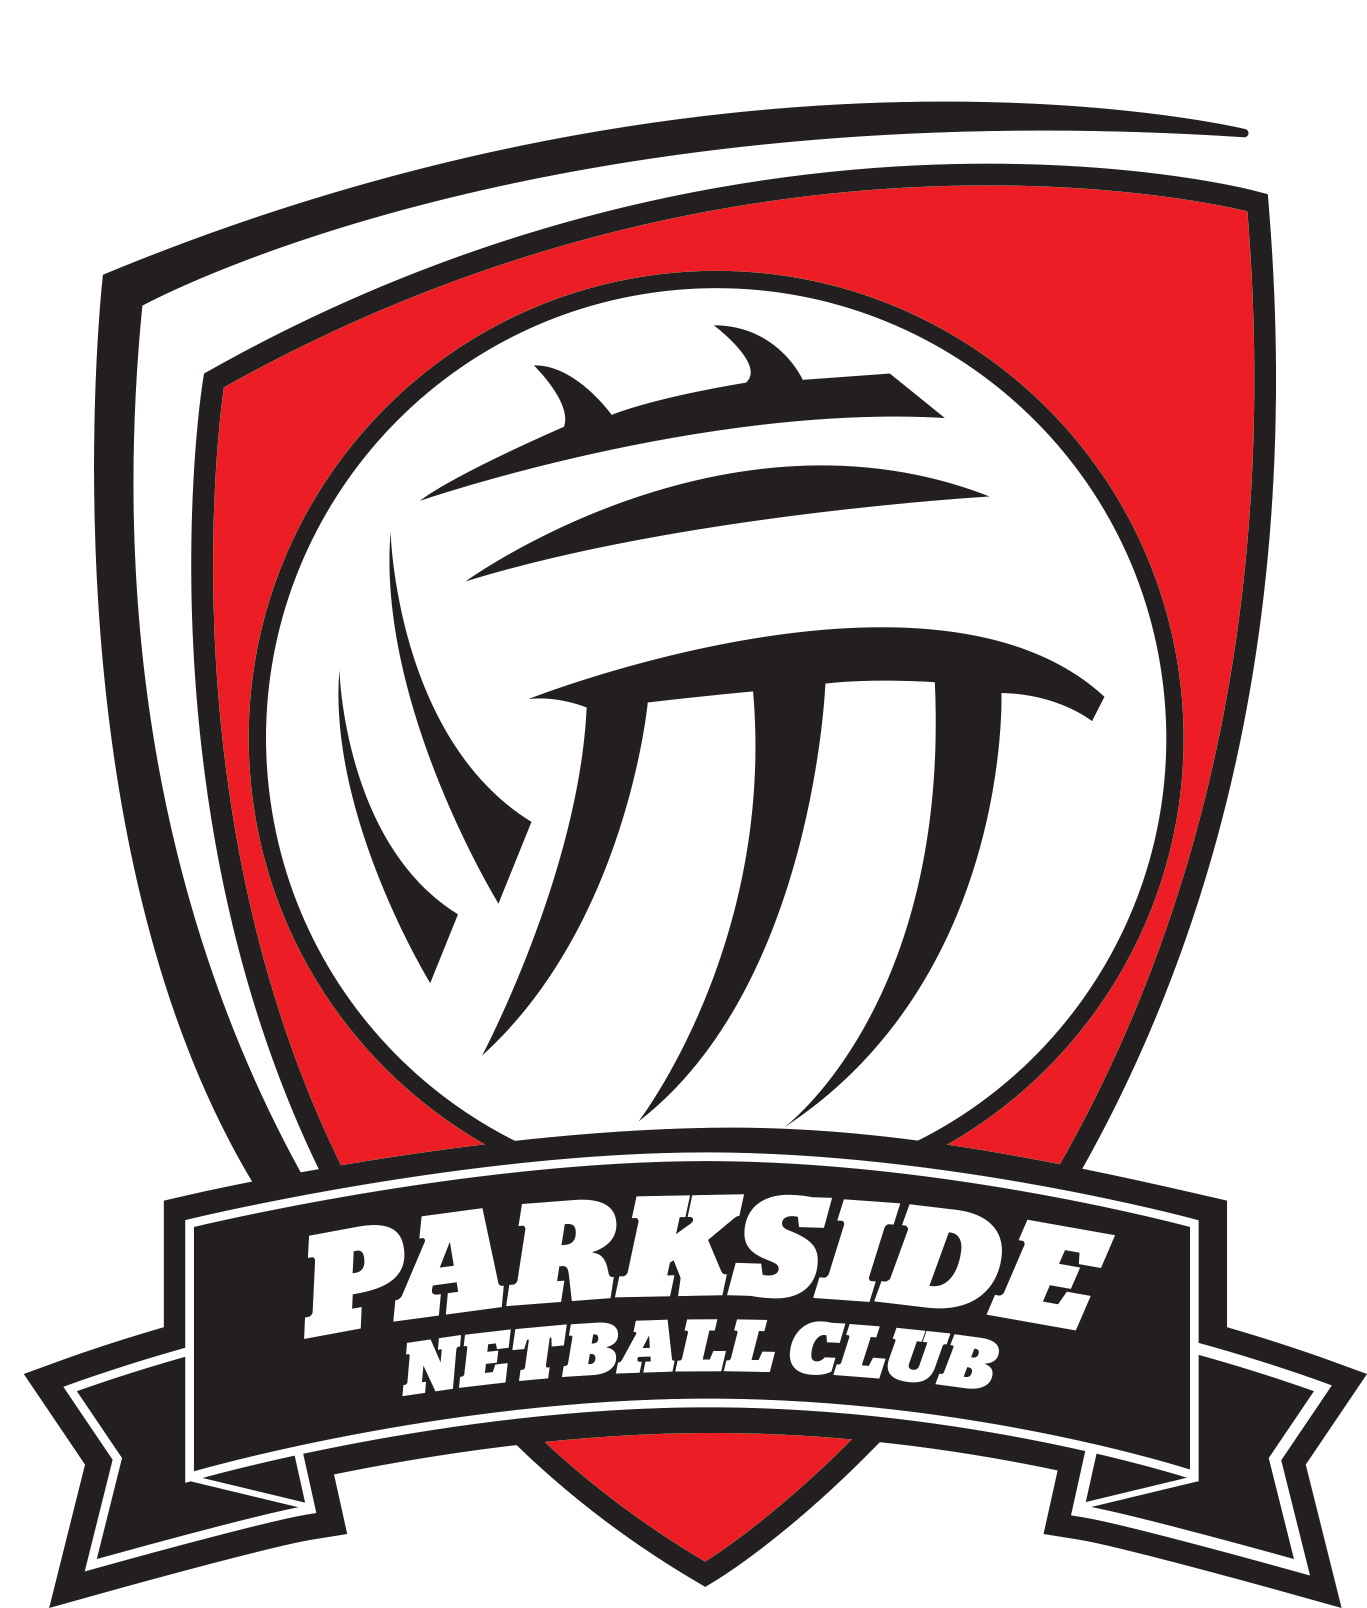 Parkside Netball Club